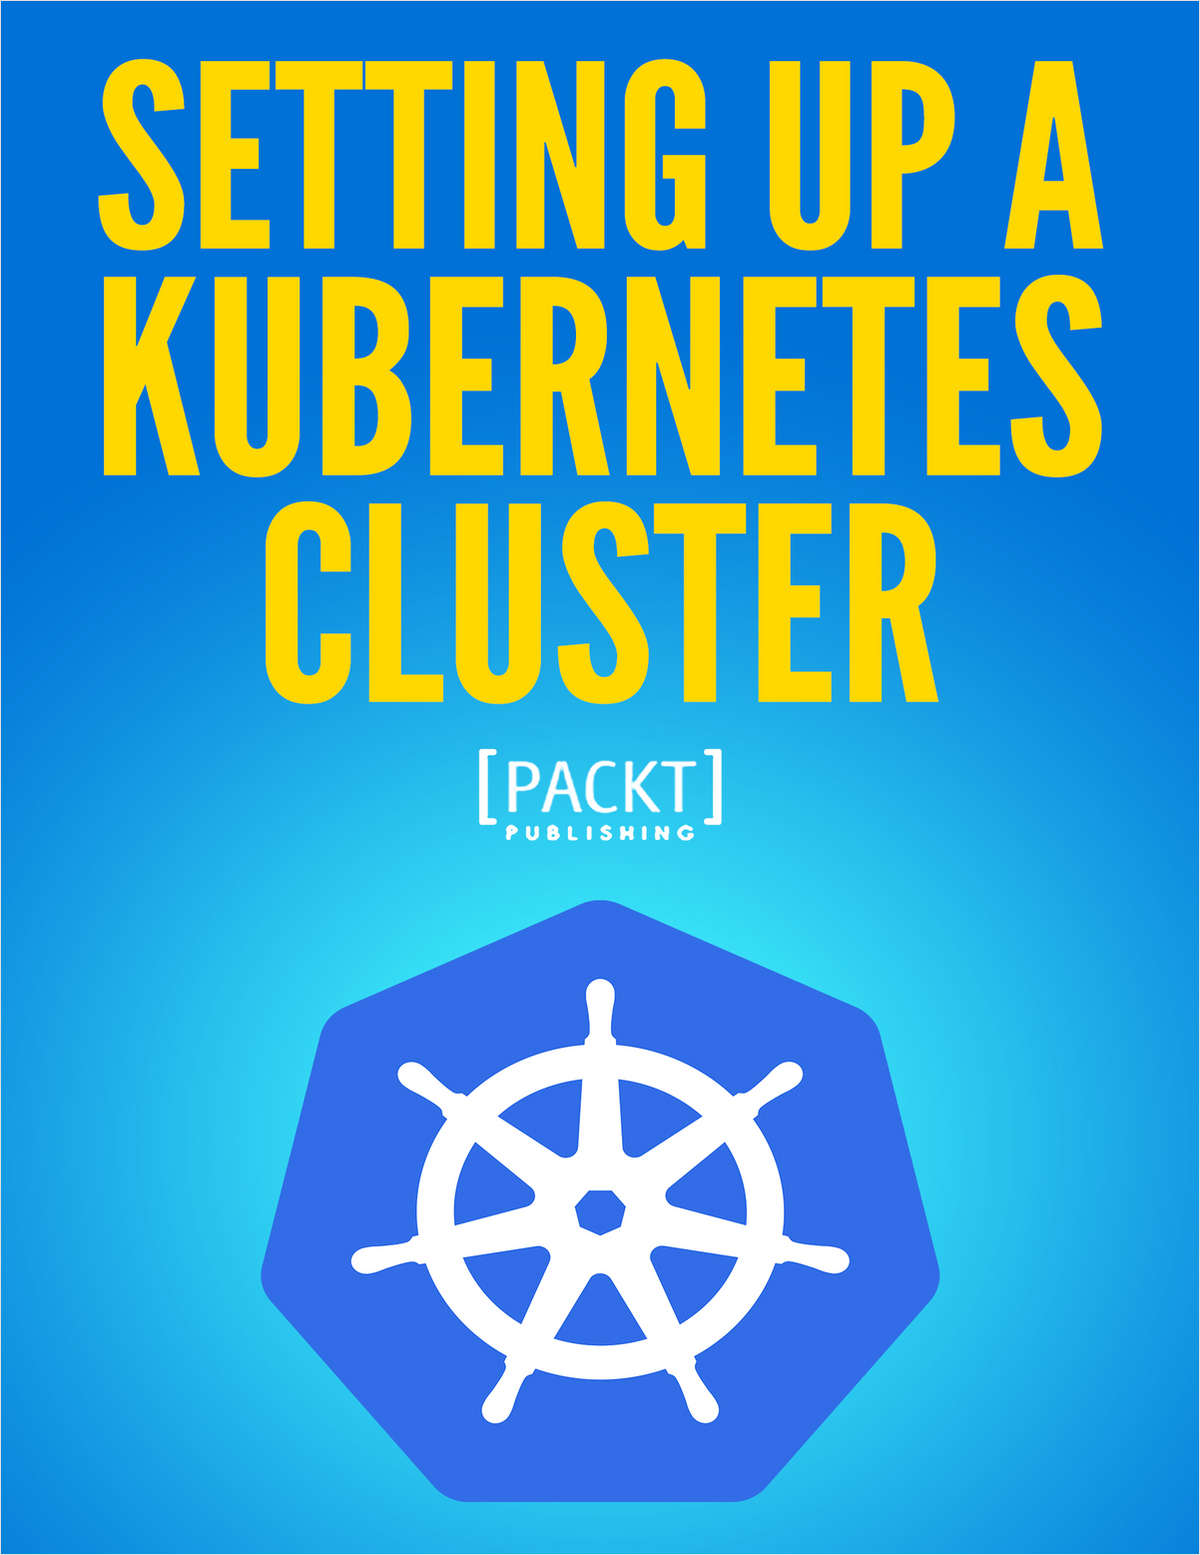 Setting up a Kubernetes Cluster